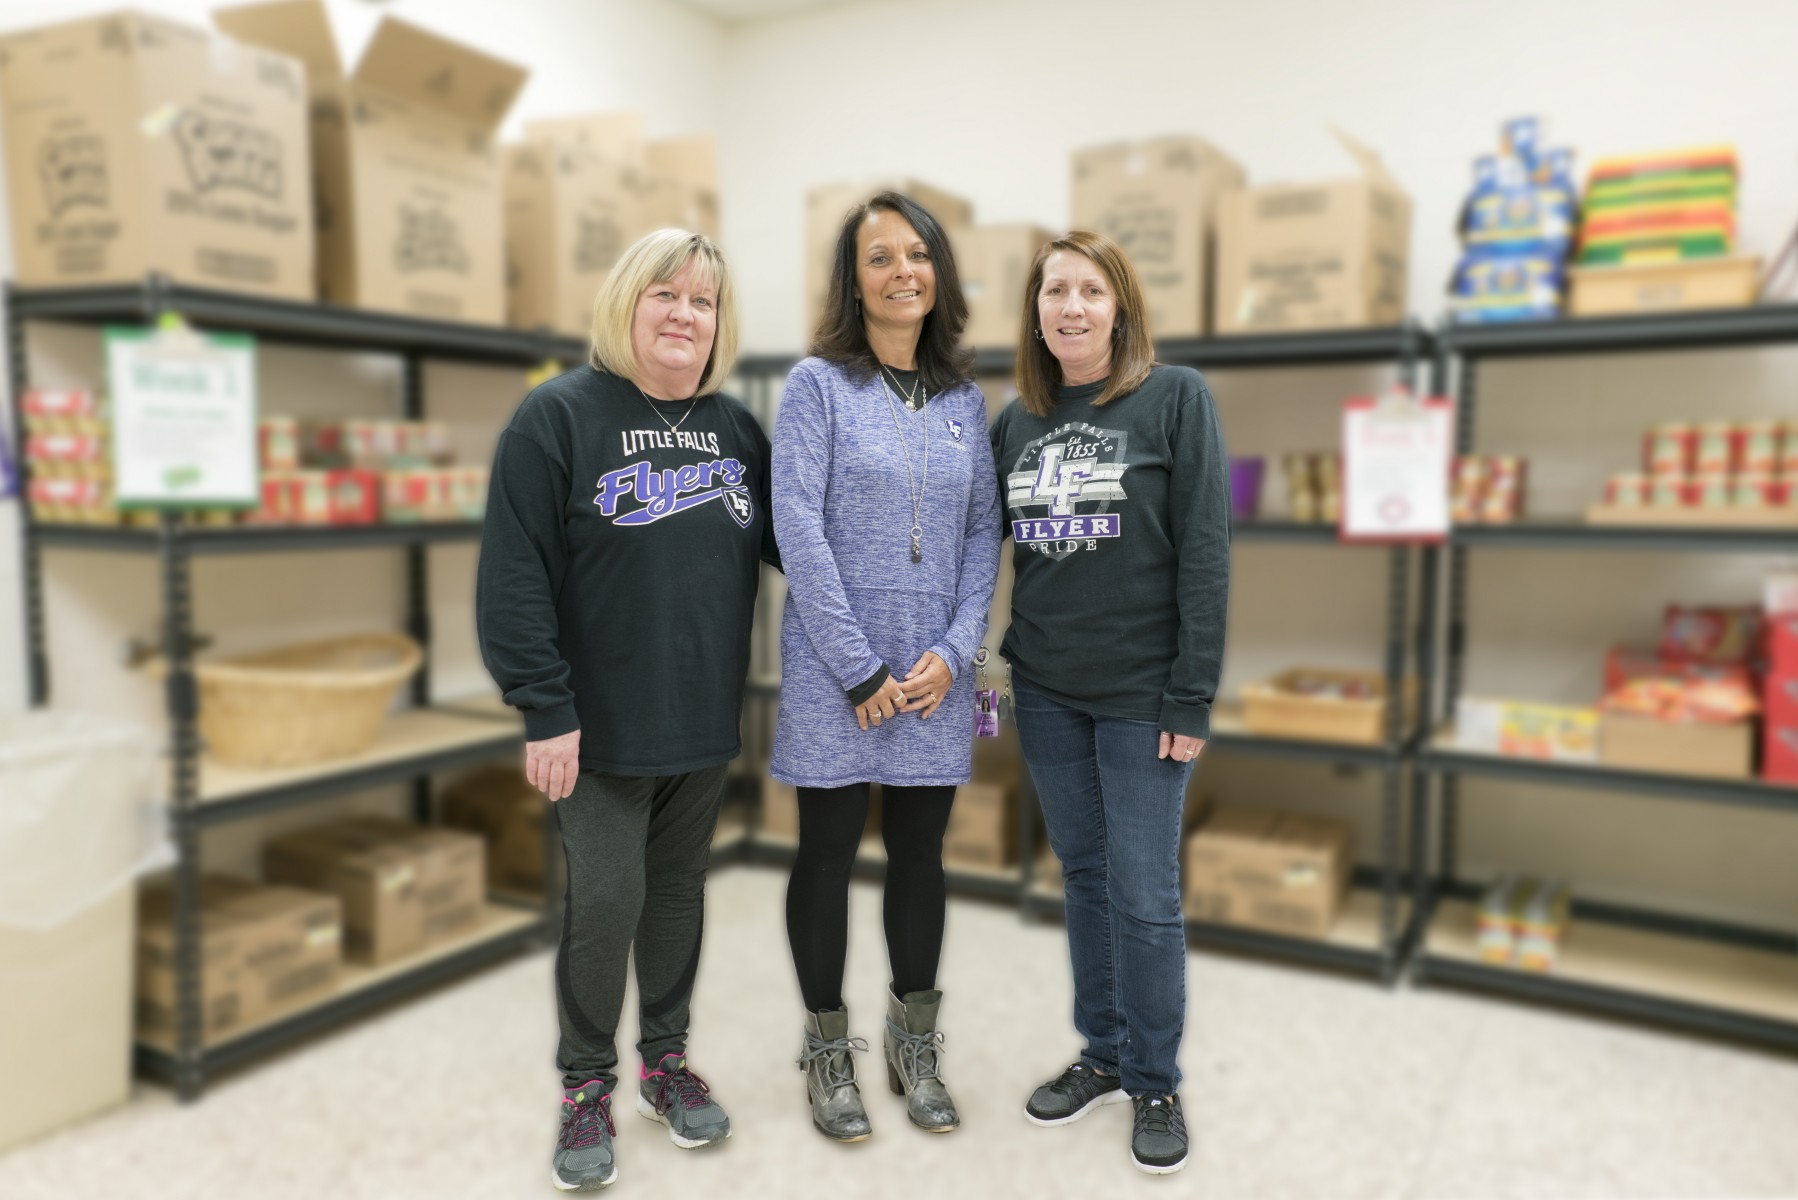 Little Falls educators, Laura DeChaine, Anita Larsen, and Cindy Casillas, stop for a photo as they pack food for students as part of the Flyer Pride Pack Weekend Food Program.